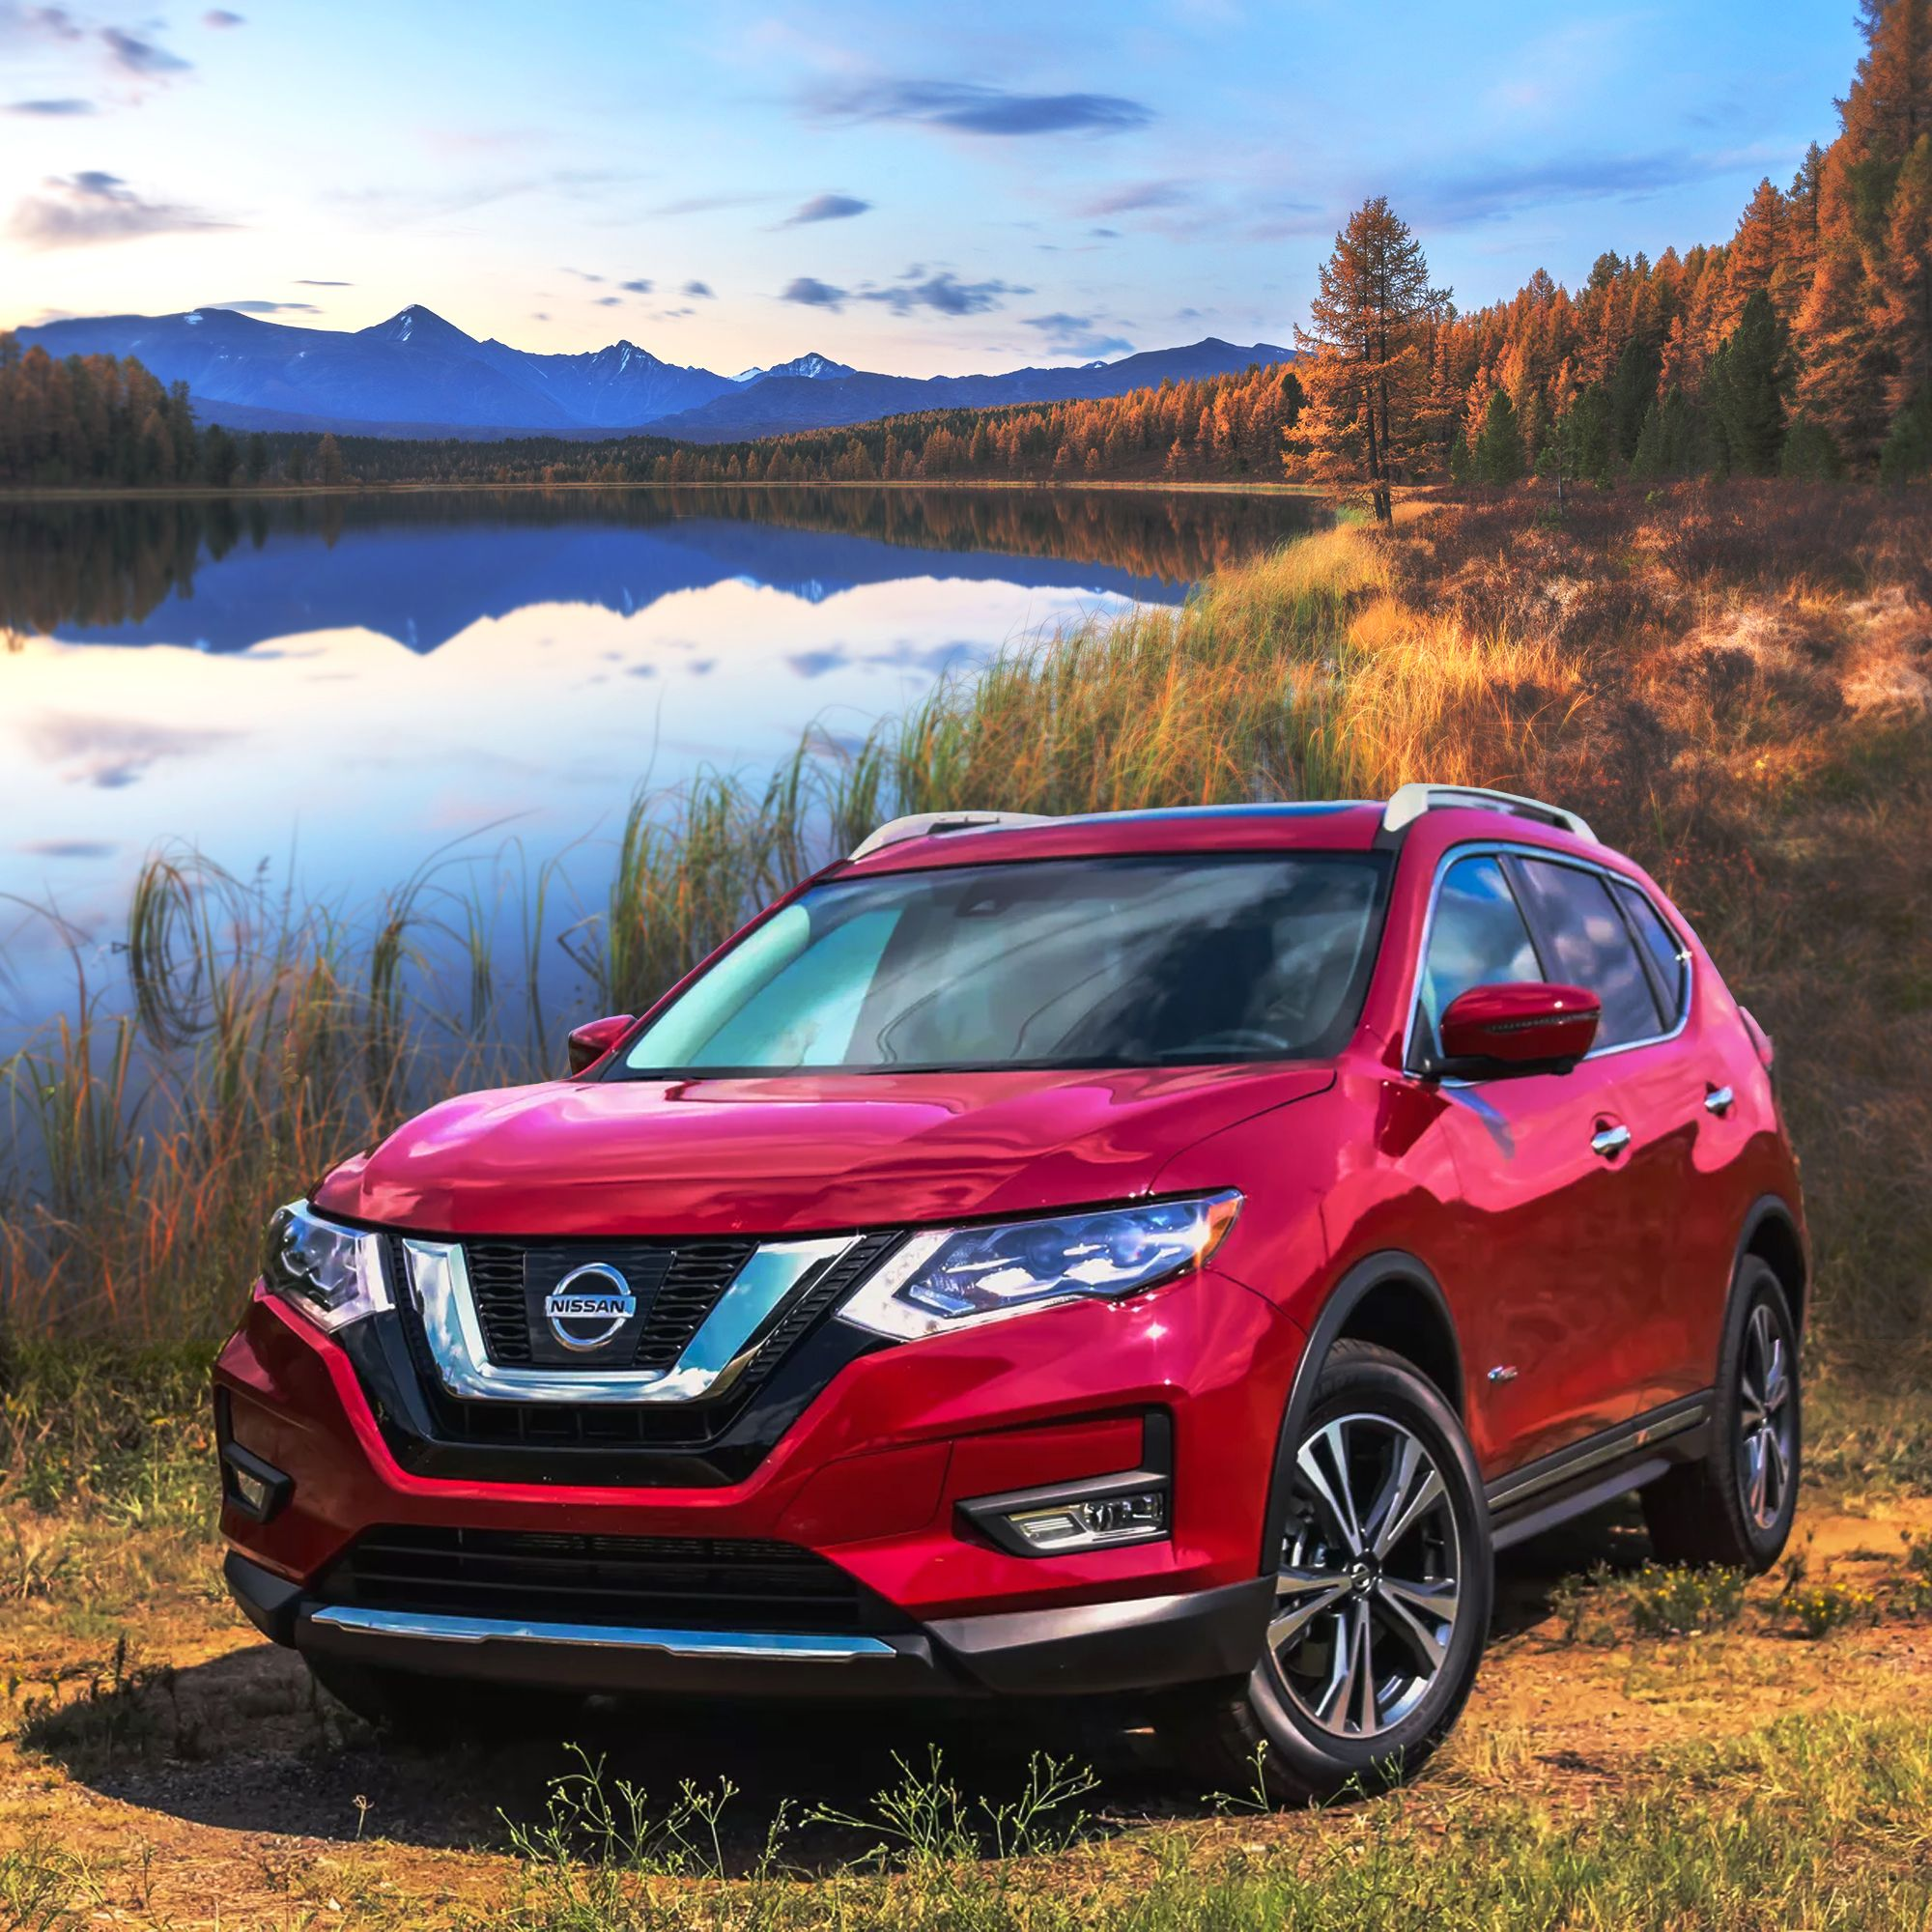 The Reviews Are In Nissan Rogue Compact Crossover Adds A 2017 Hybrid Model And It S A Hit Read The Whole Review Now Nissan Rogue Hybrid Car Nissan